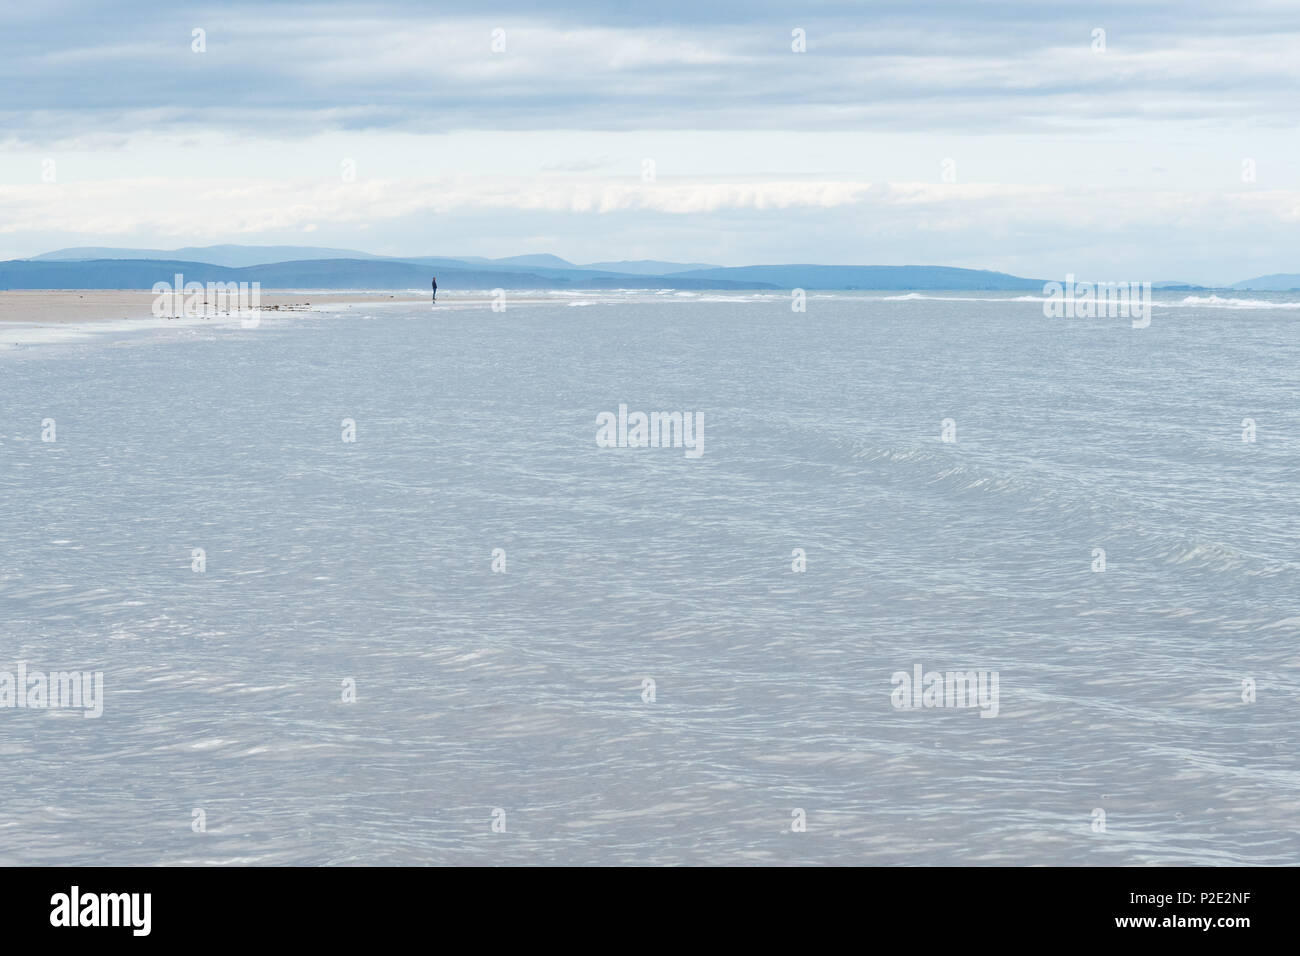 tiny male figure standing on empty beach looking out to sea, North Beach, Burghead Bay, Findhorn, The Moray Firth, Scotland, UK - Stock Image